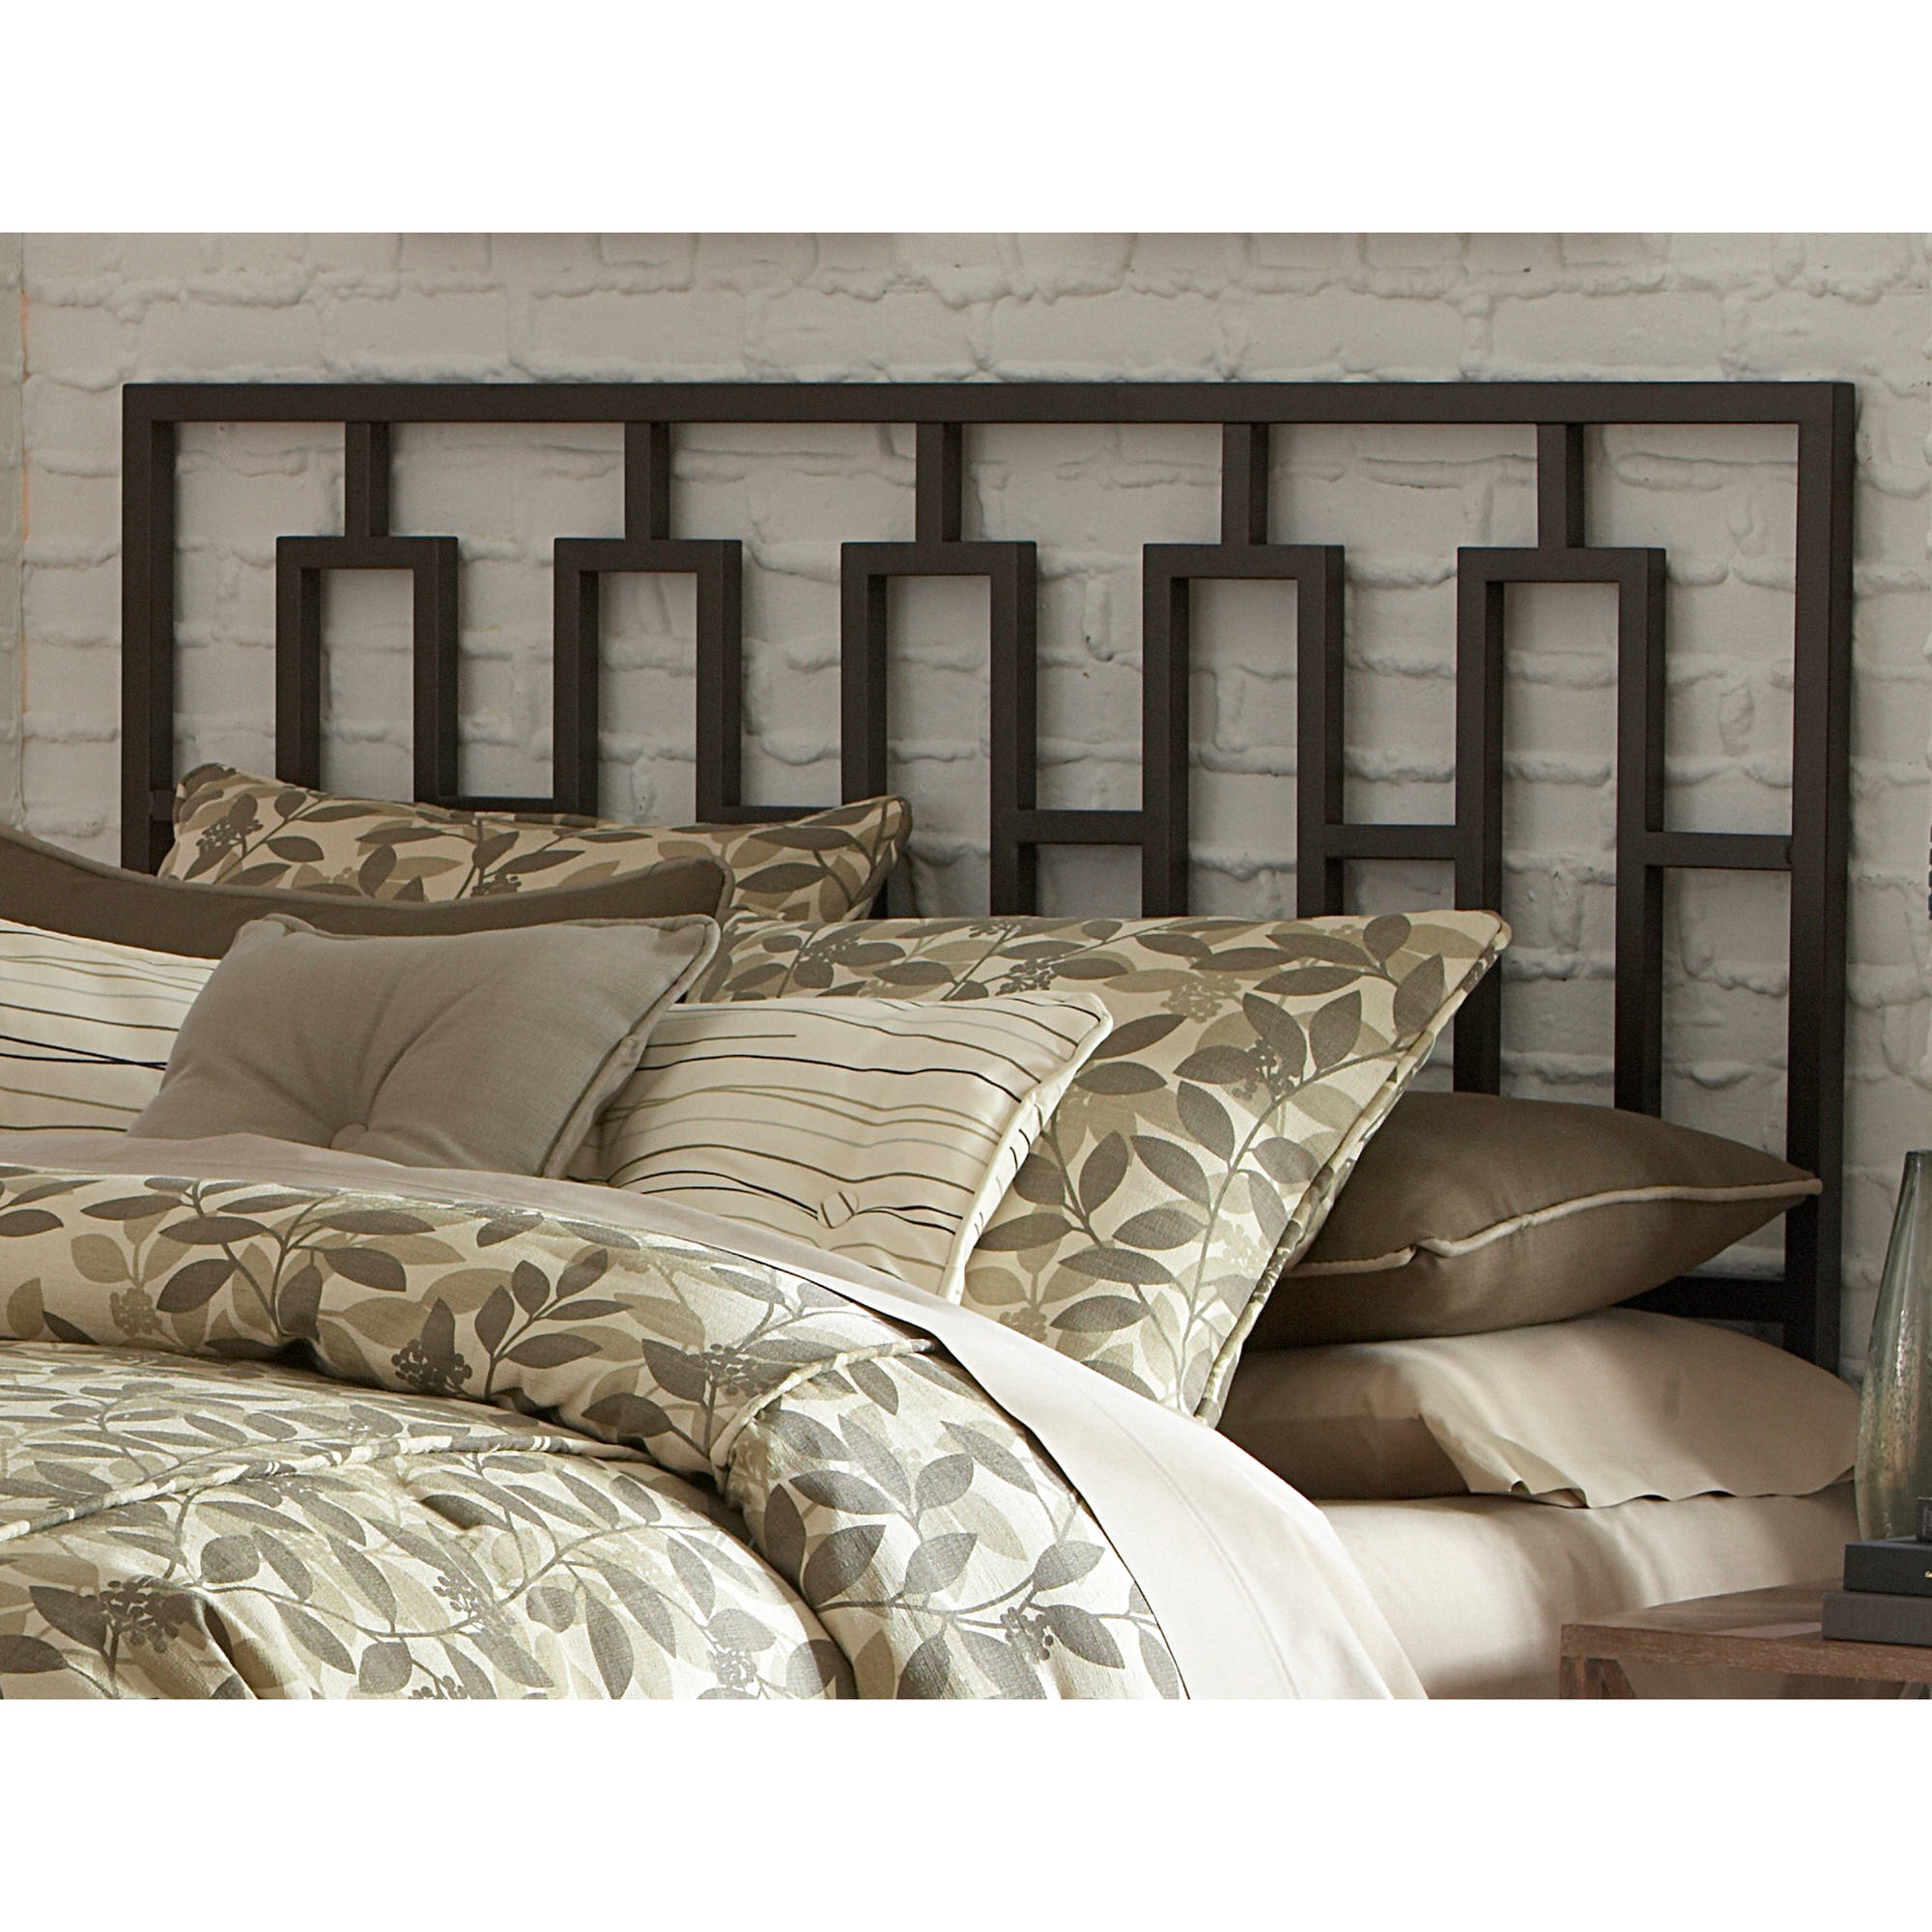 Fashion Bed Group by Leggett & Platt Miami Coffee Headboard, Multiple Sizes